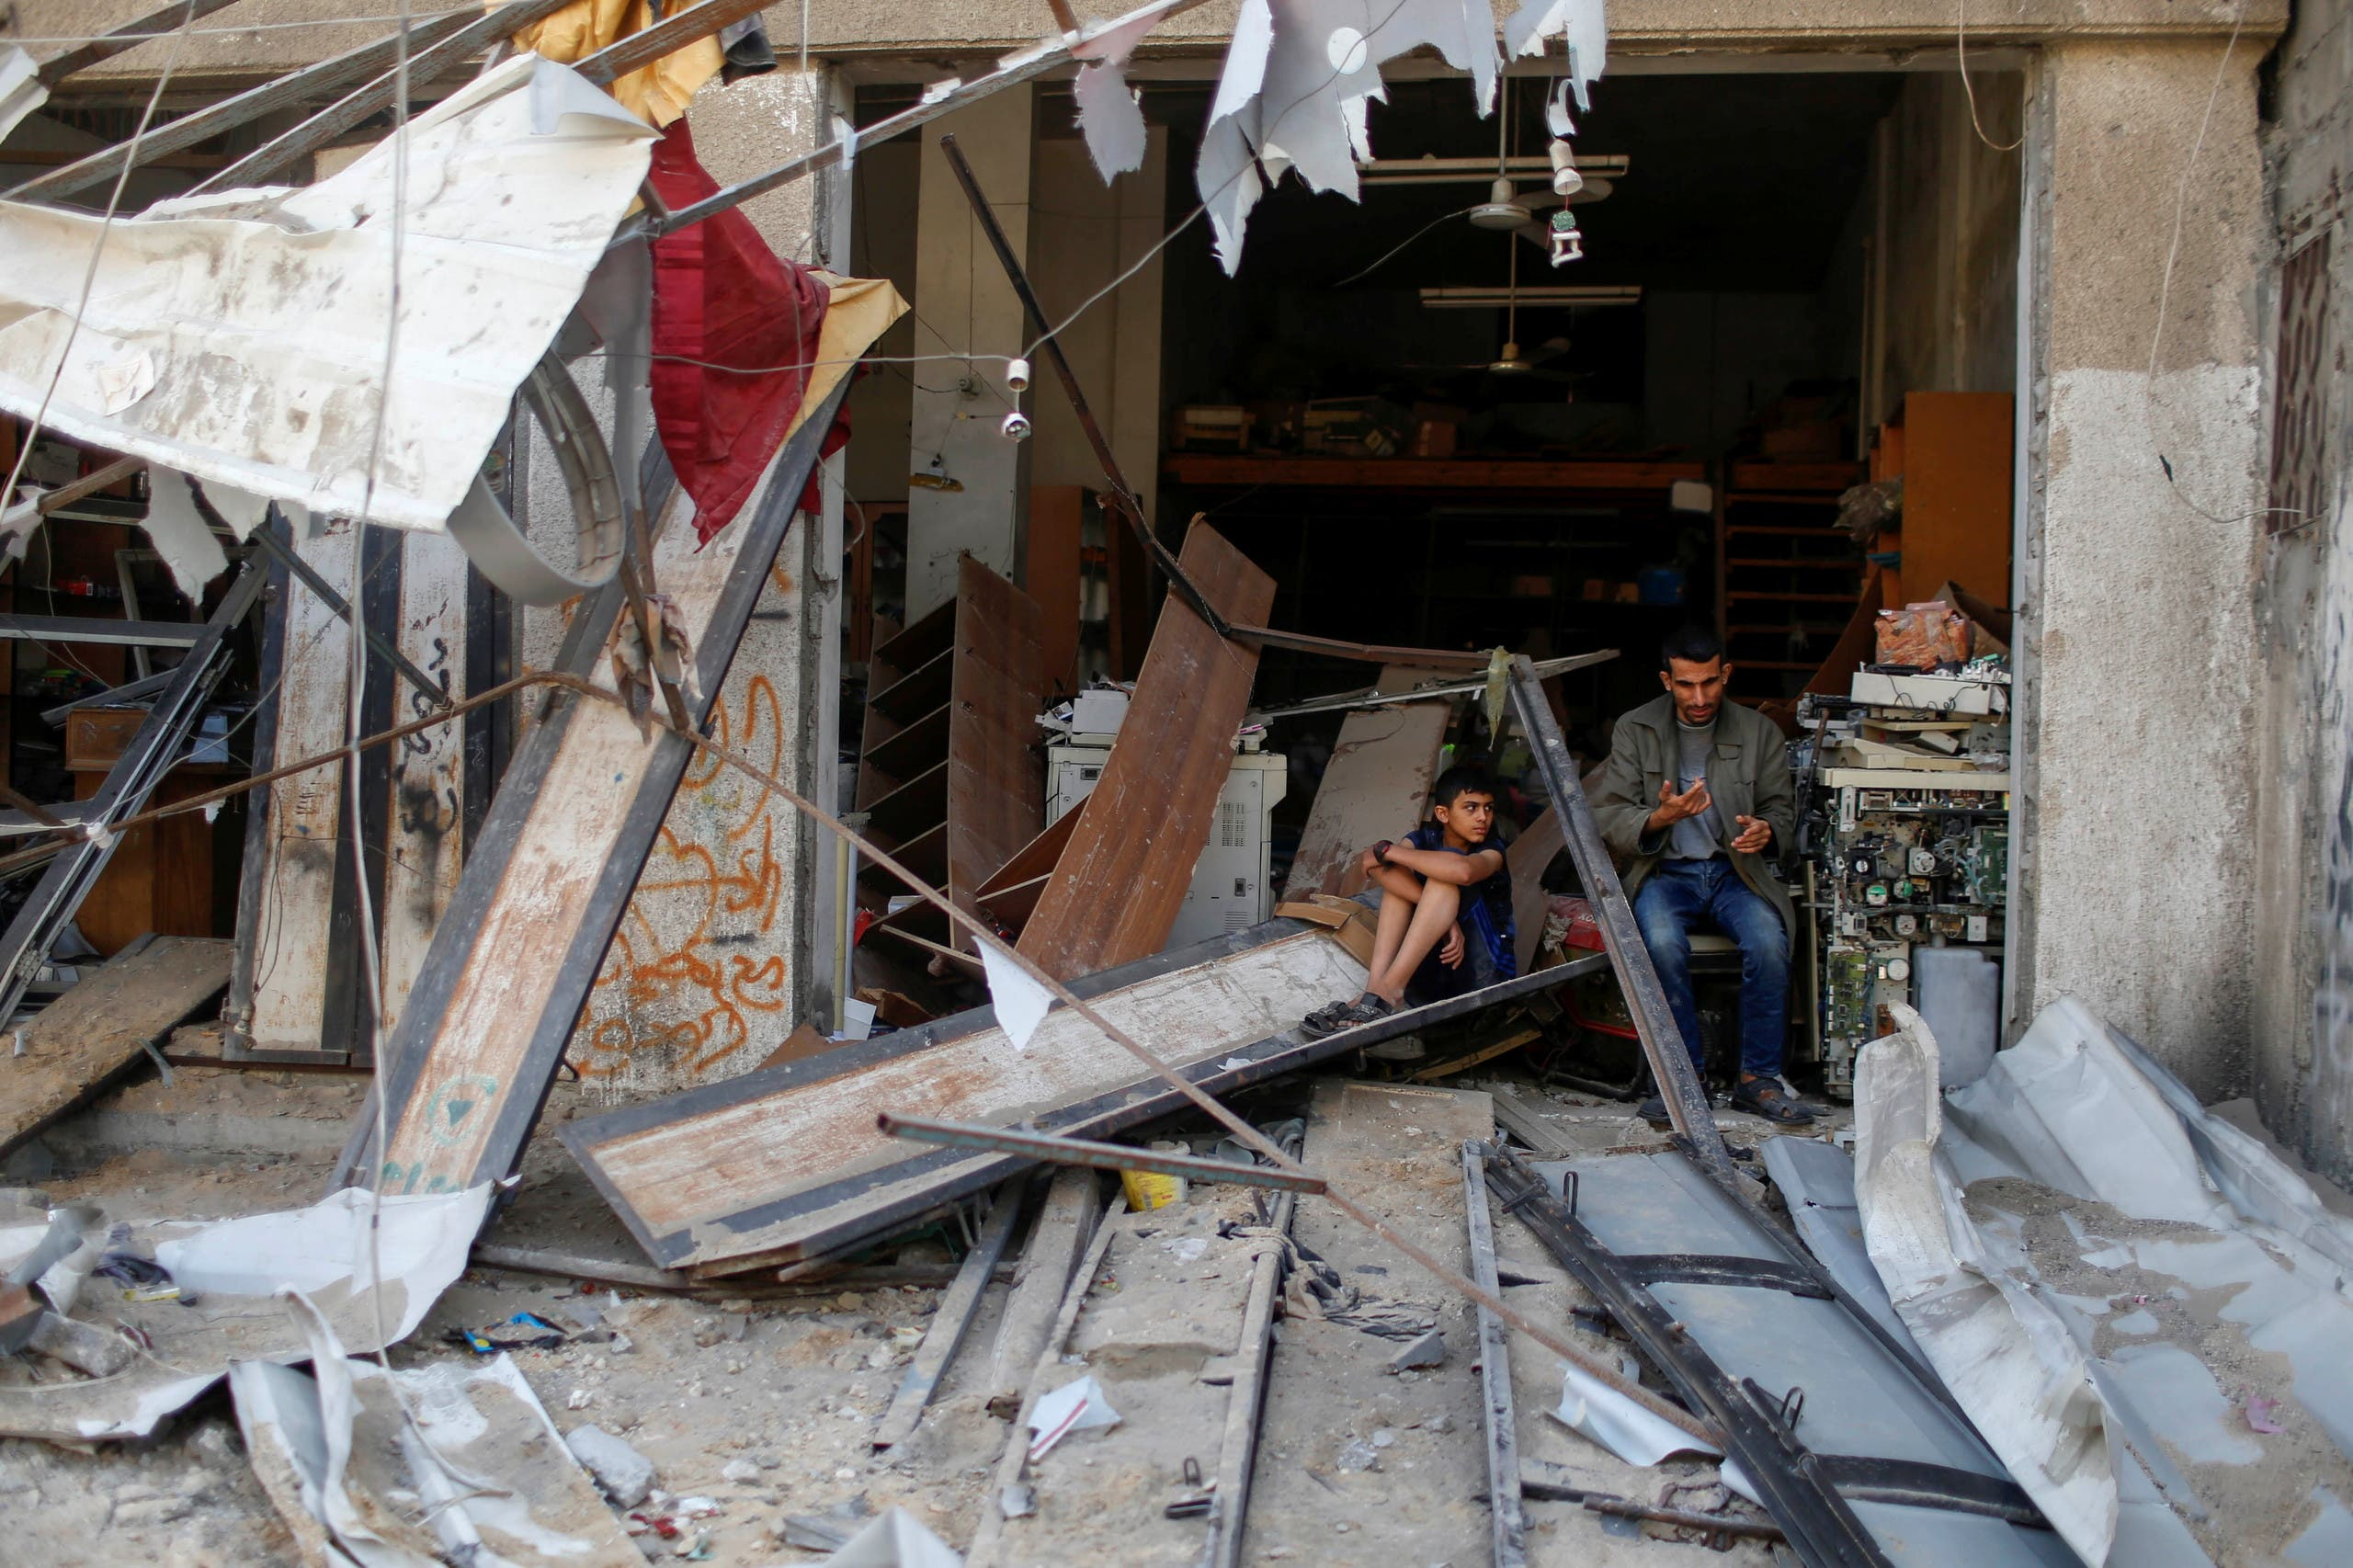 Palestinians sit amidst the damage in the aftermath of Israeli air strikes, amid Israeli-Palestinian fighting, in Gaza, May 20, 2021. (Reuters)